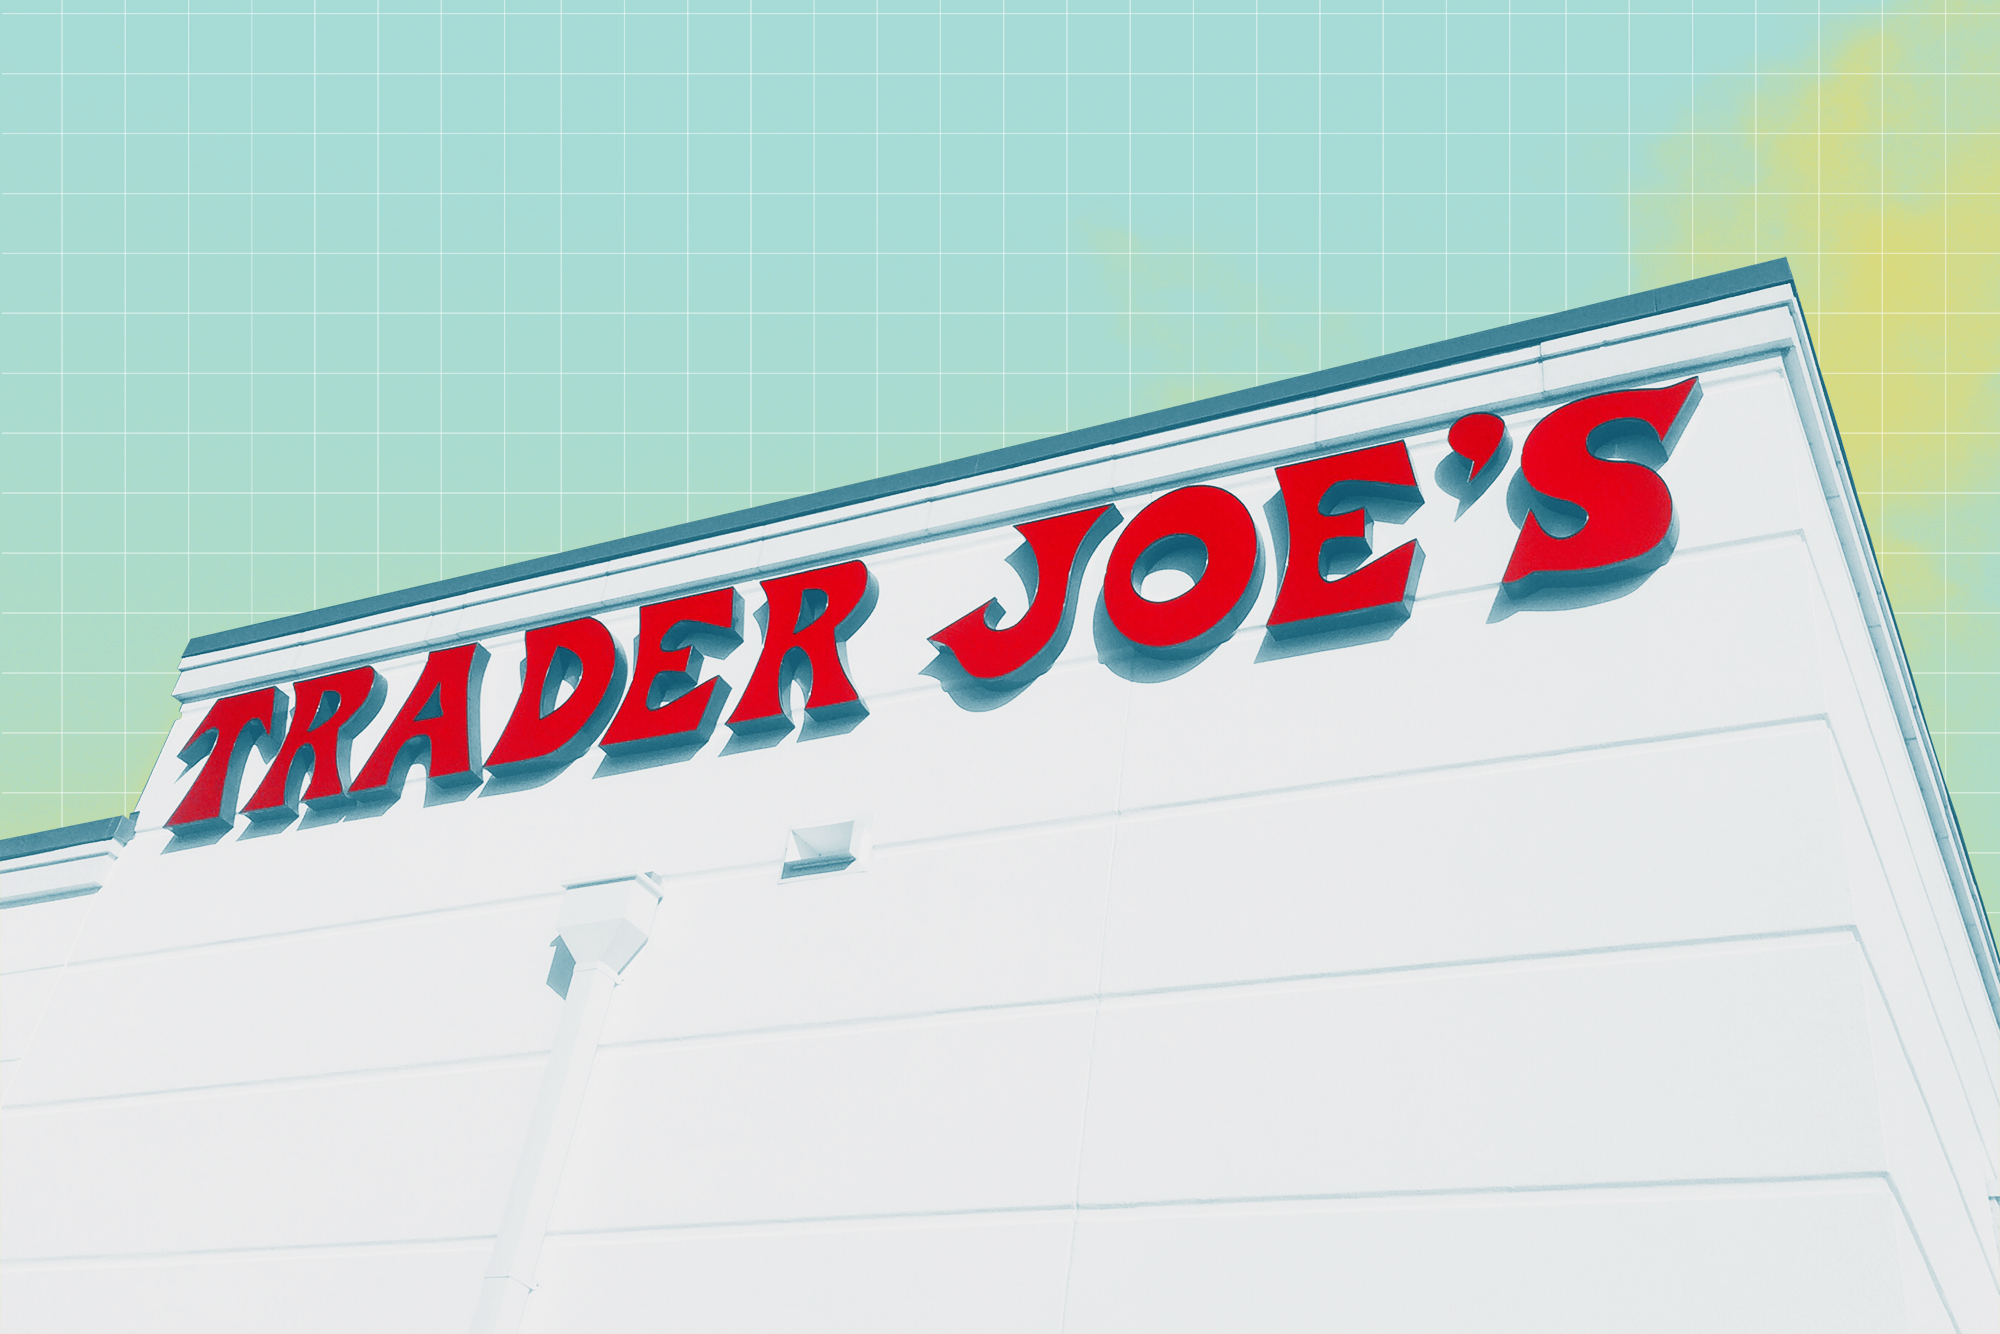 Trader Joe's sign with a treatment